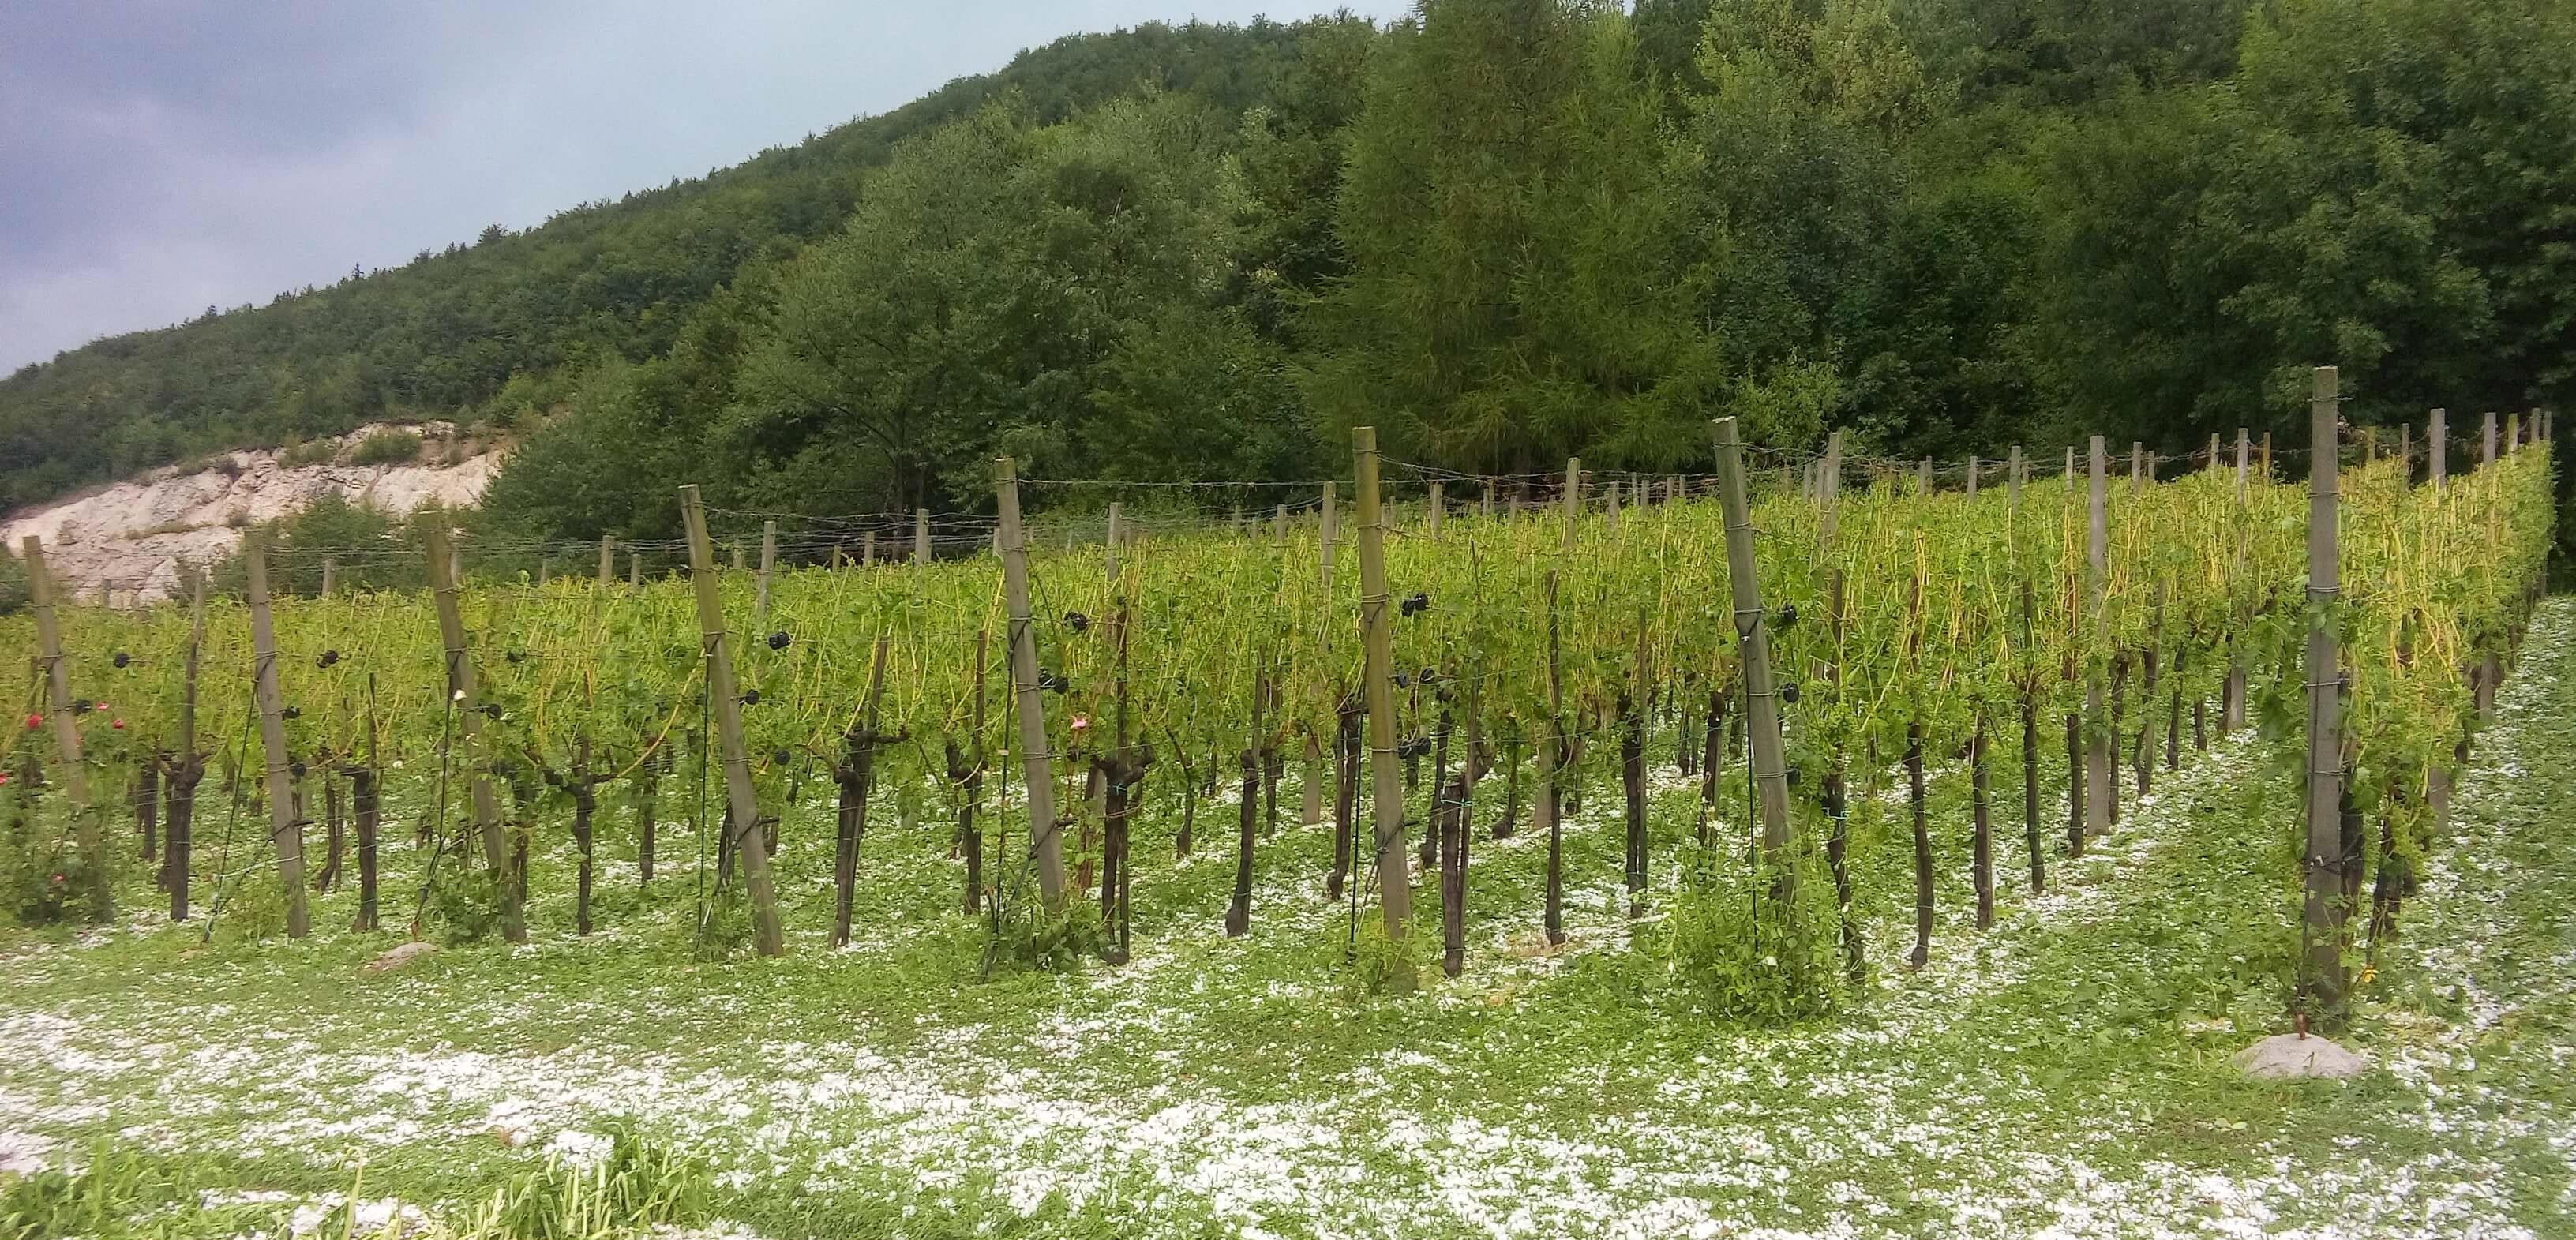 Hail in vineyards - damage, protection methods and management